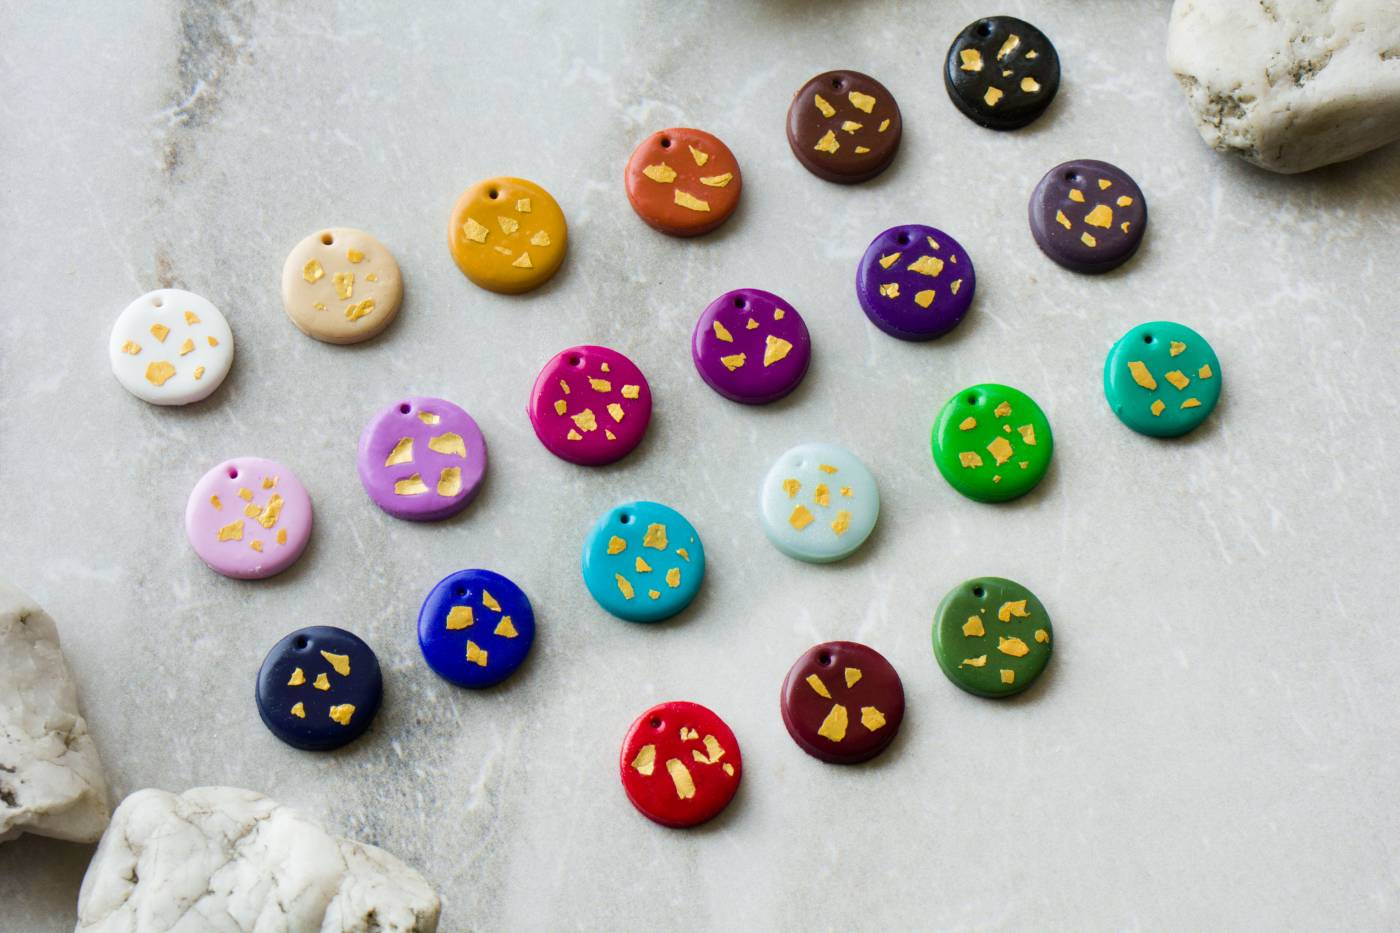 Multicolour-Polymer-Clay-Earrings-Pendan.jpg